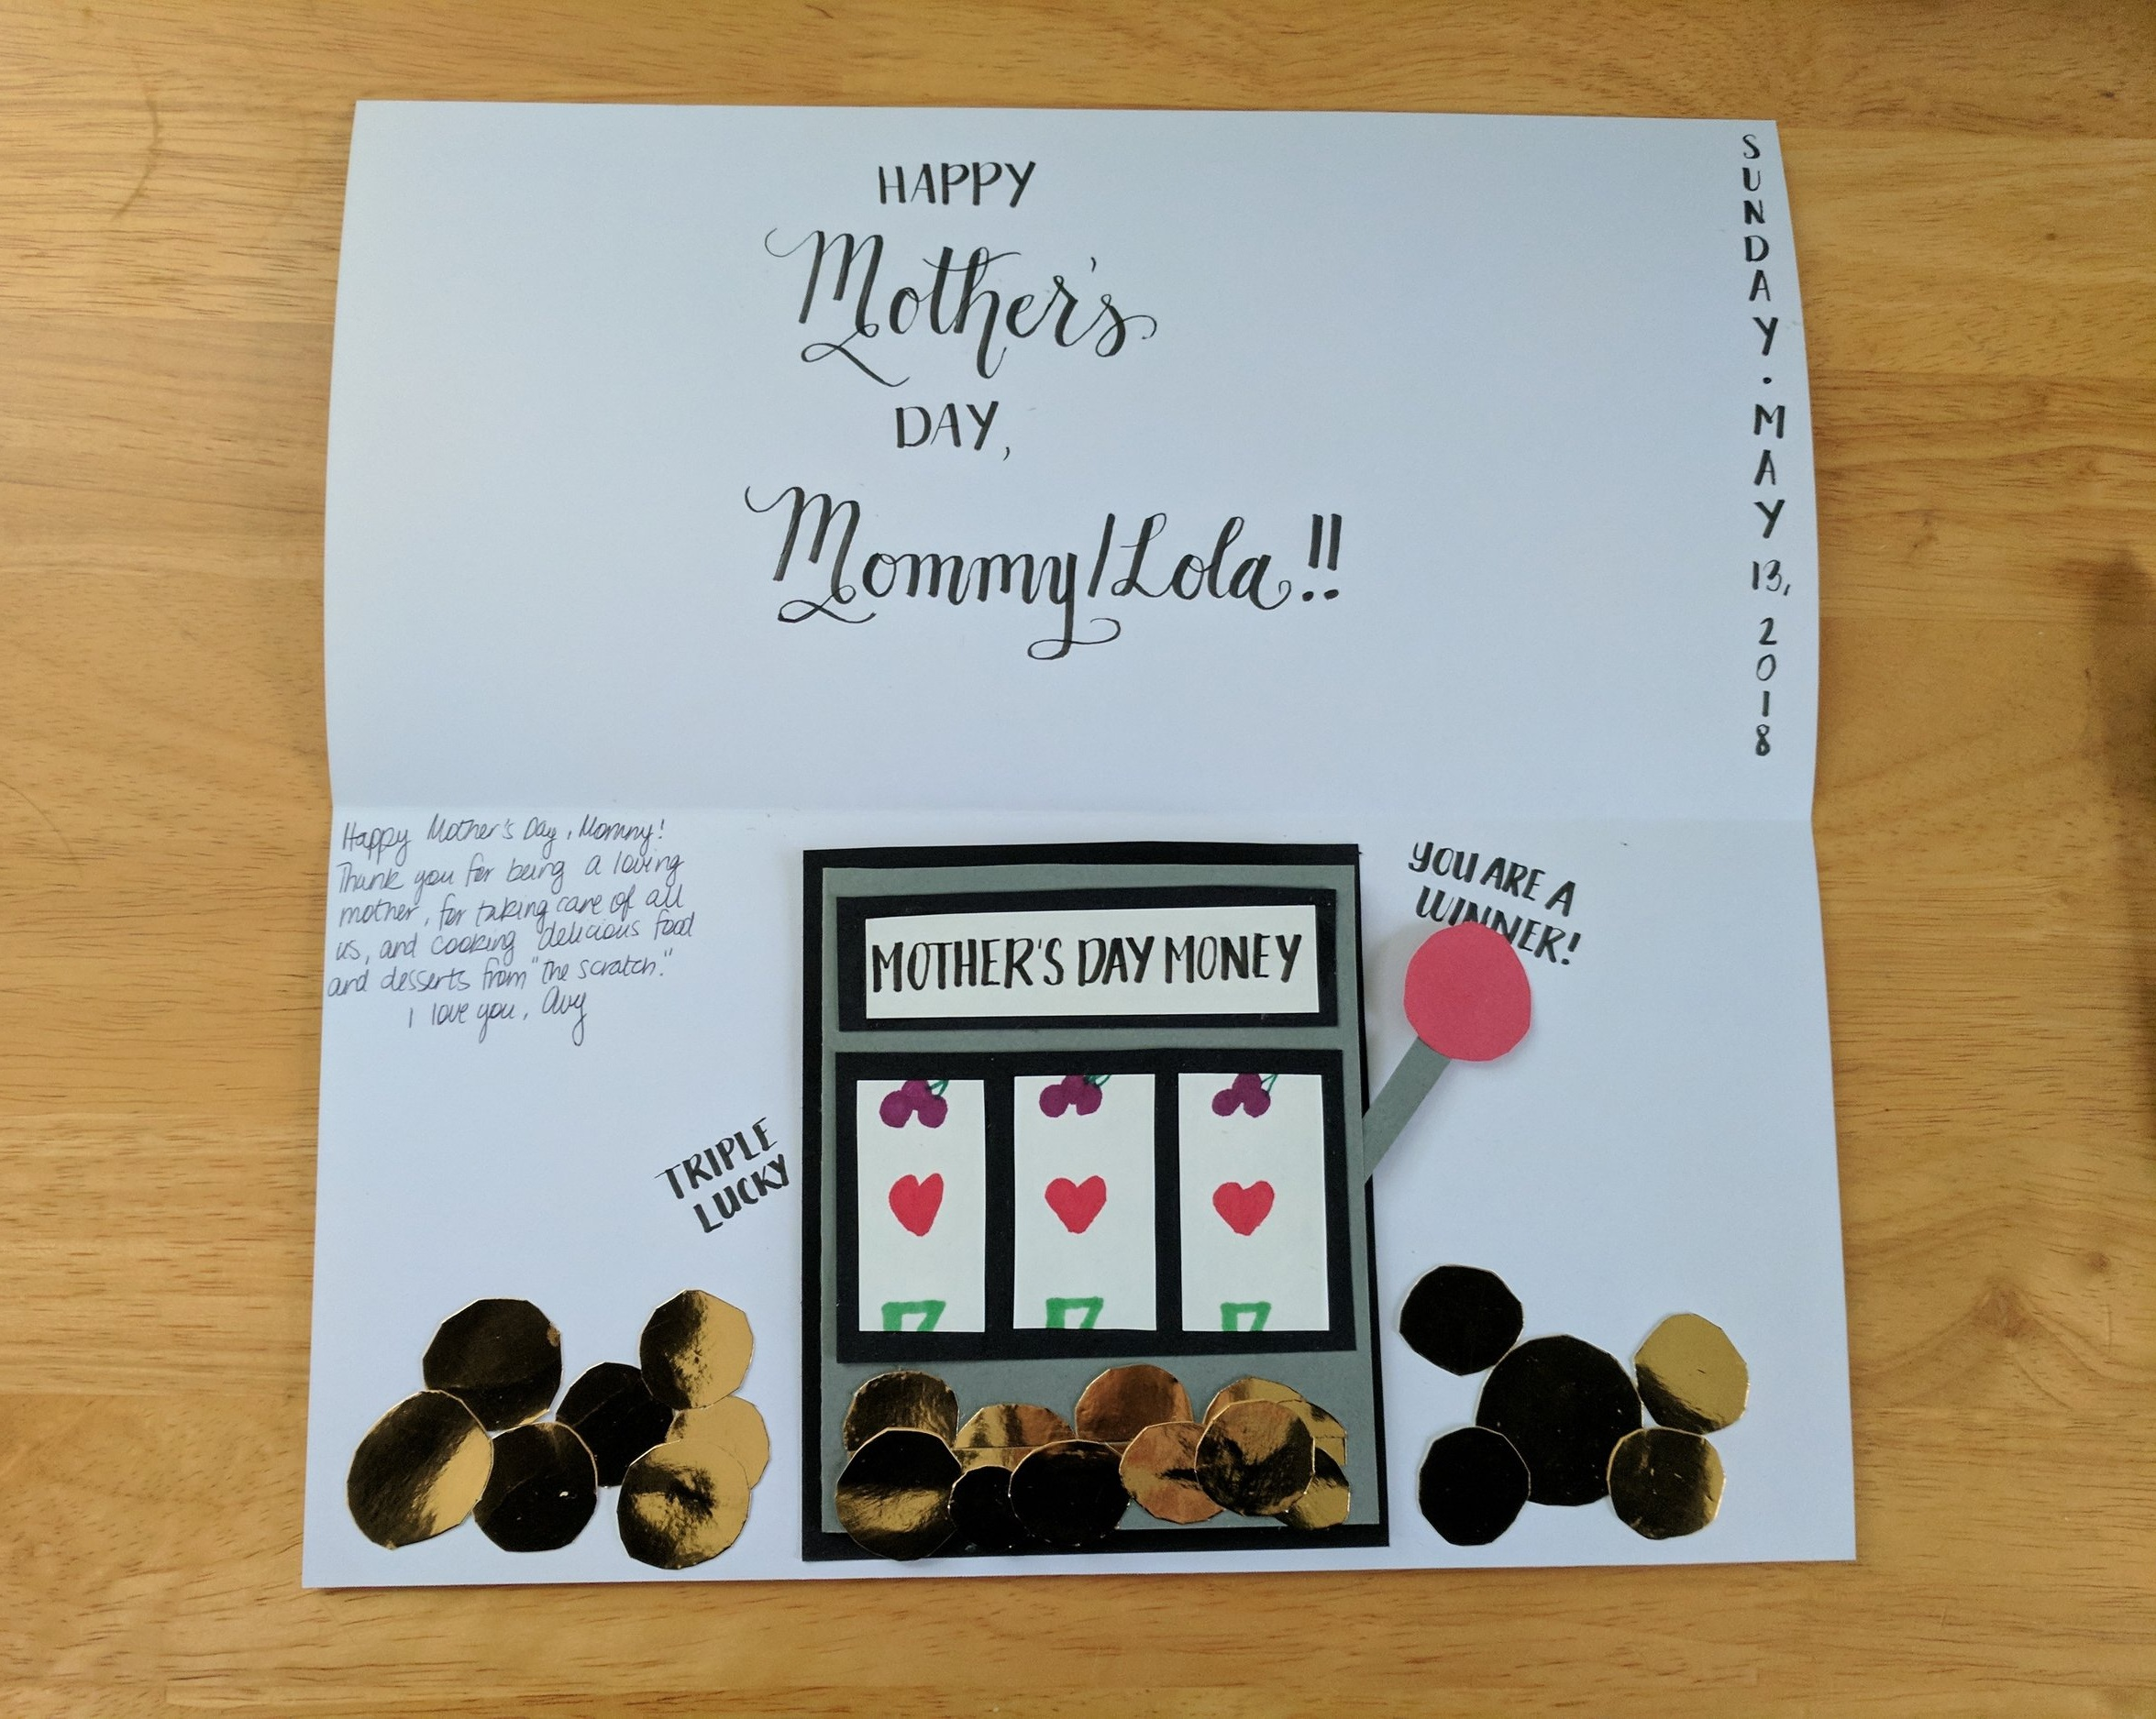 Slot machine card for my mother who likes to go to Atlantic City for special occasions